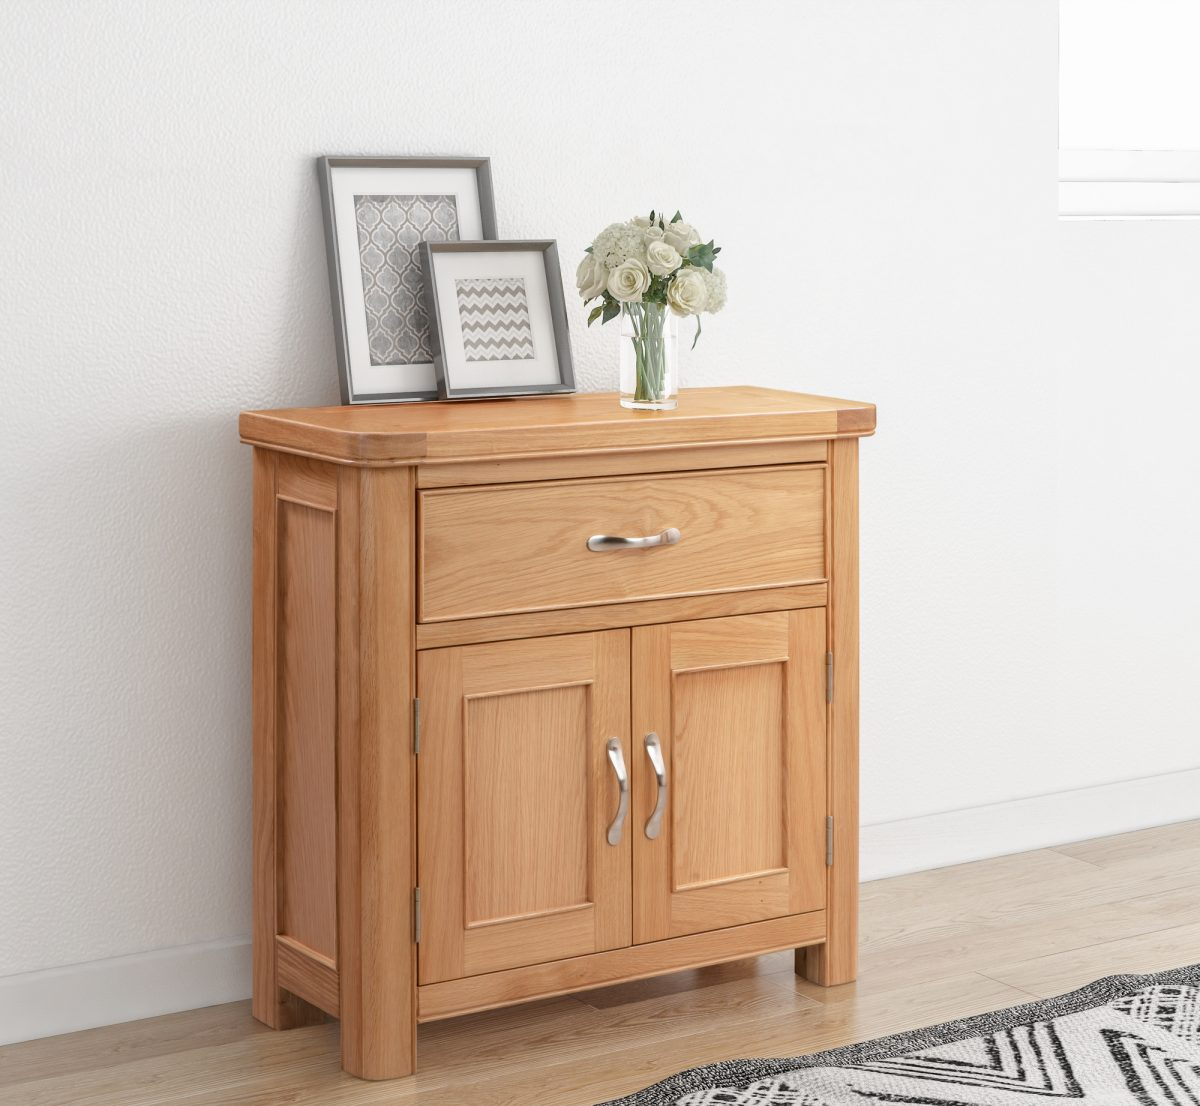 110 01 Chatsworth Compact Sideboard 1 Drawer 2 Doors Feature